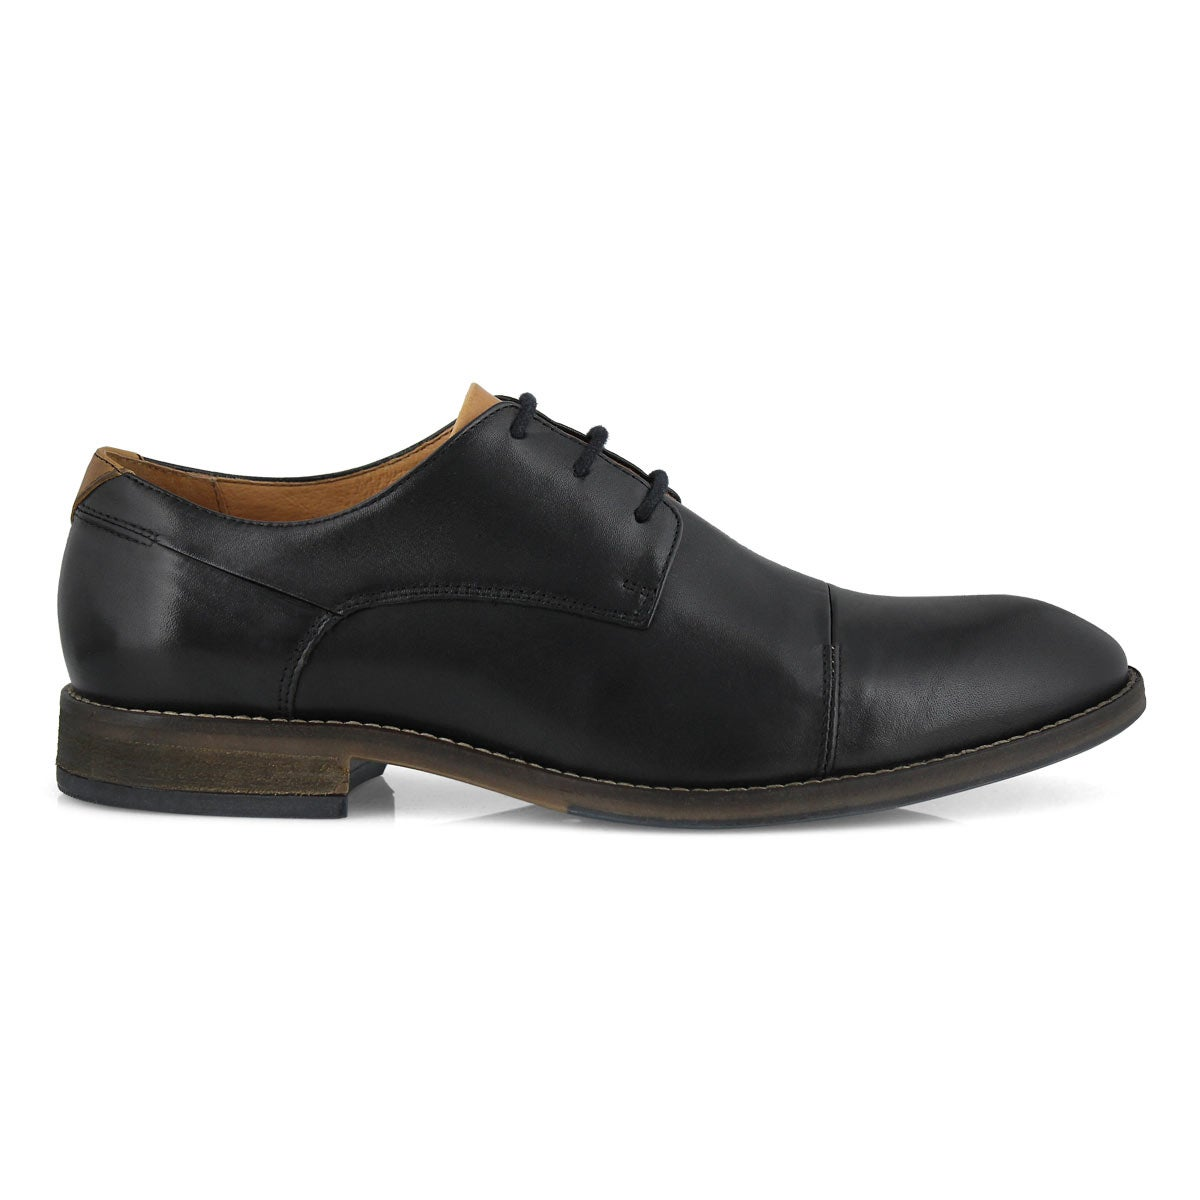 Mns Nielsen black dress oxford